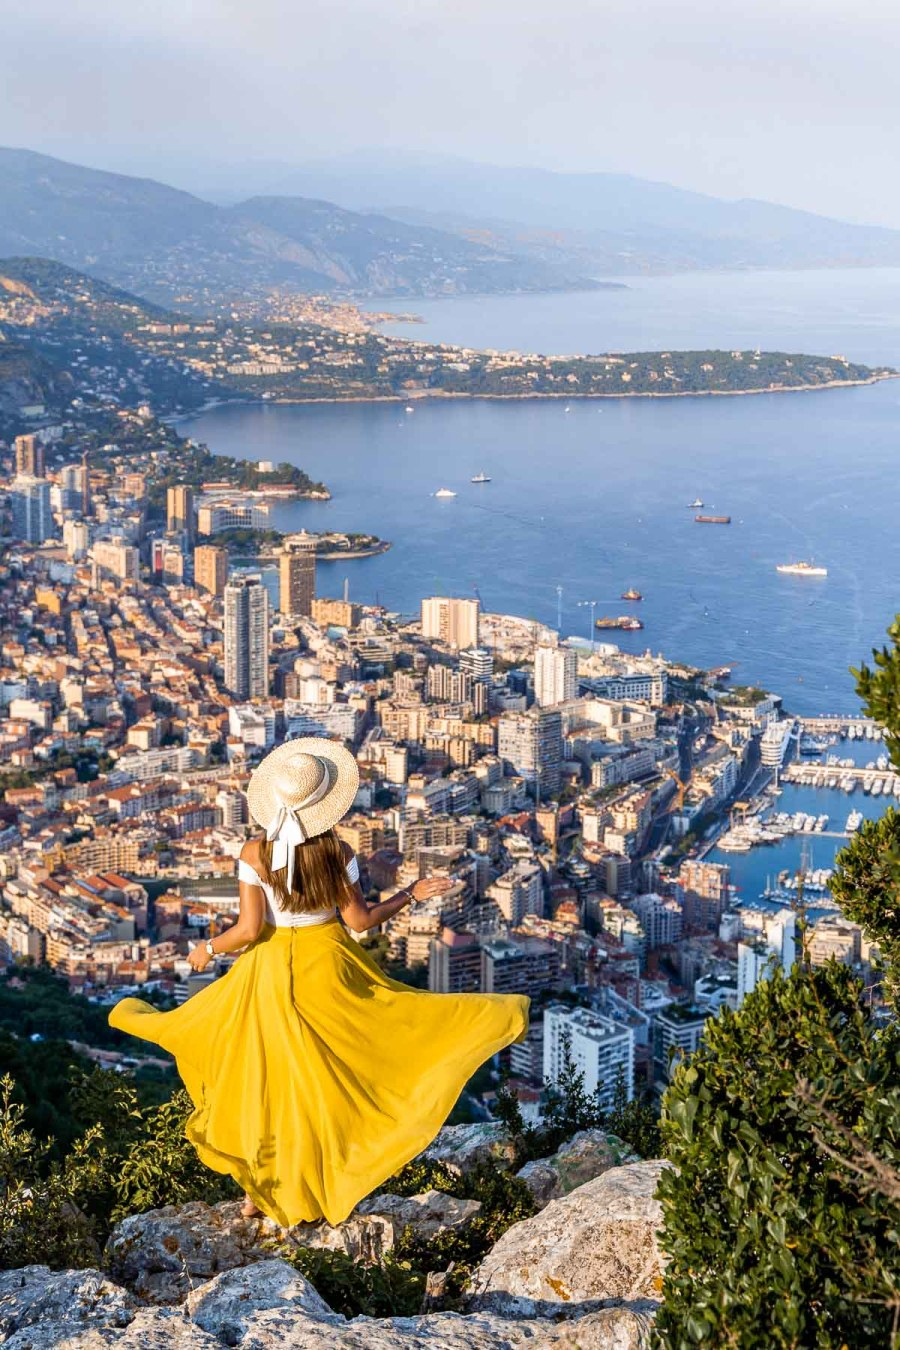 Panoramic view from Tete de Chien with girl in a yellow skirt in the middle